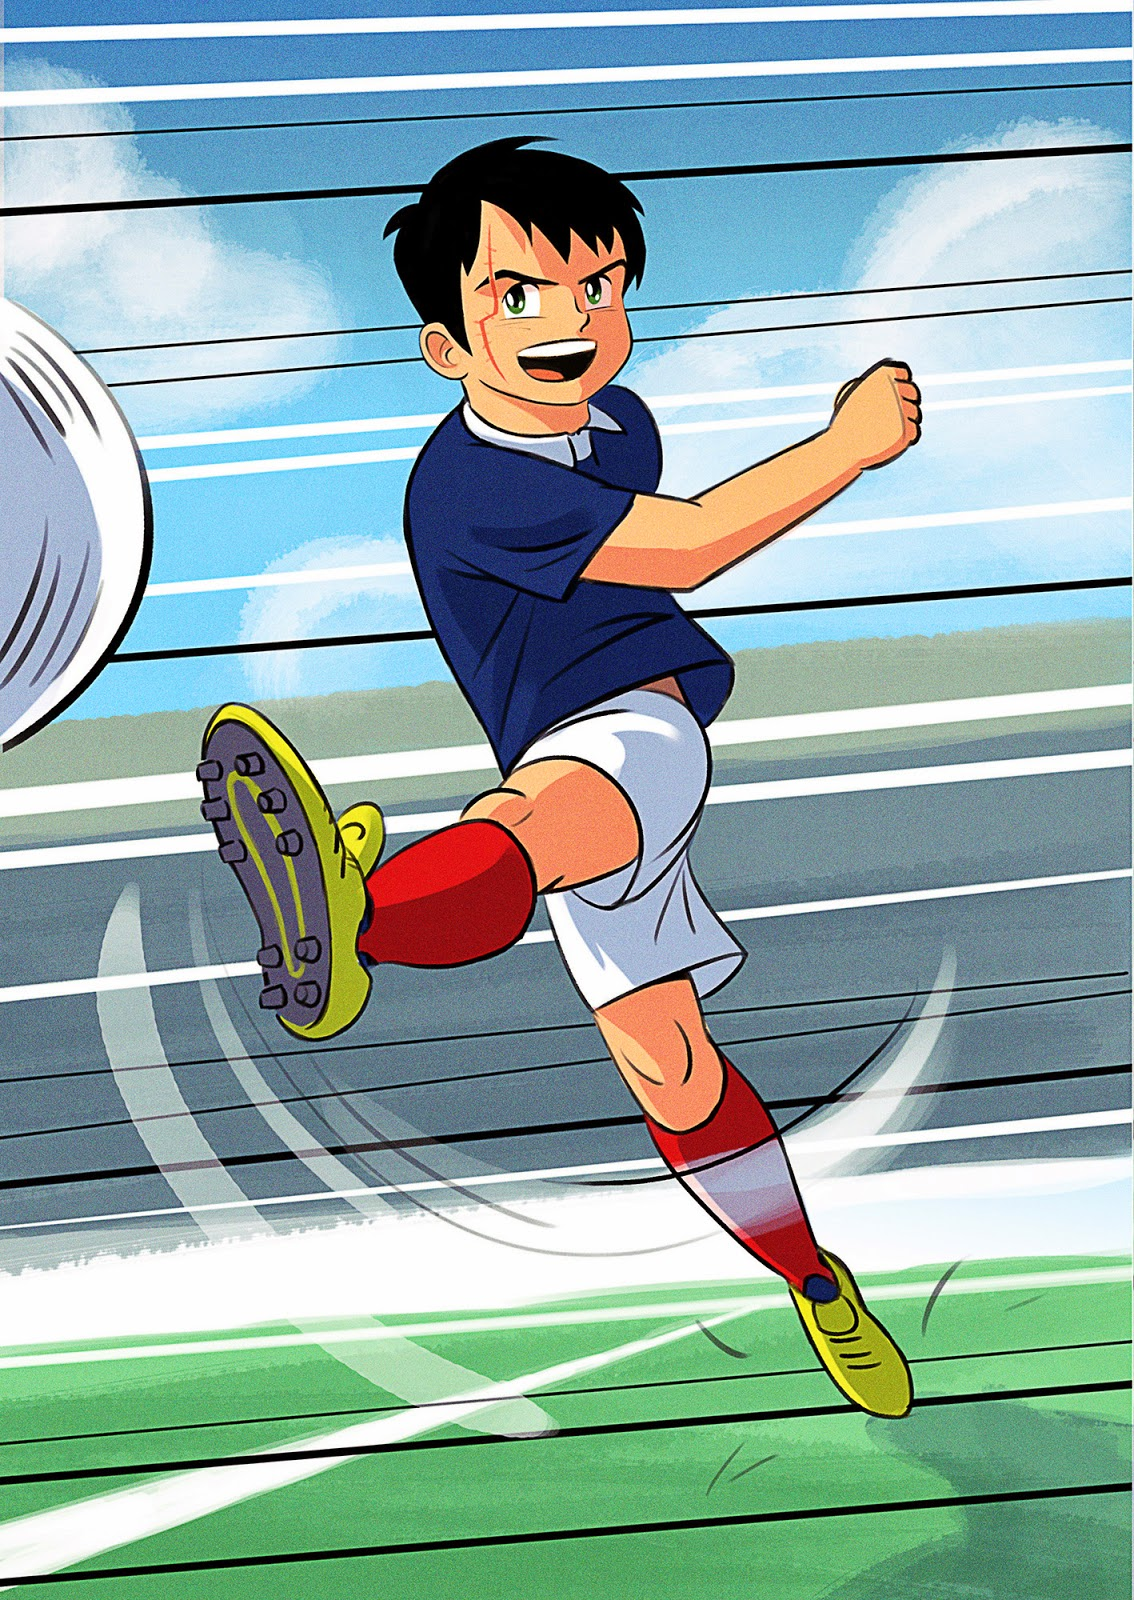 fifa_2014_kids_2characters_action_france_small.jpg